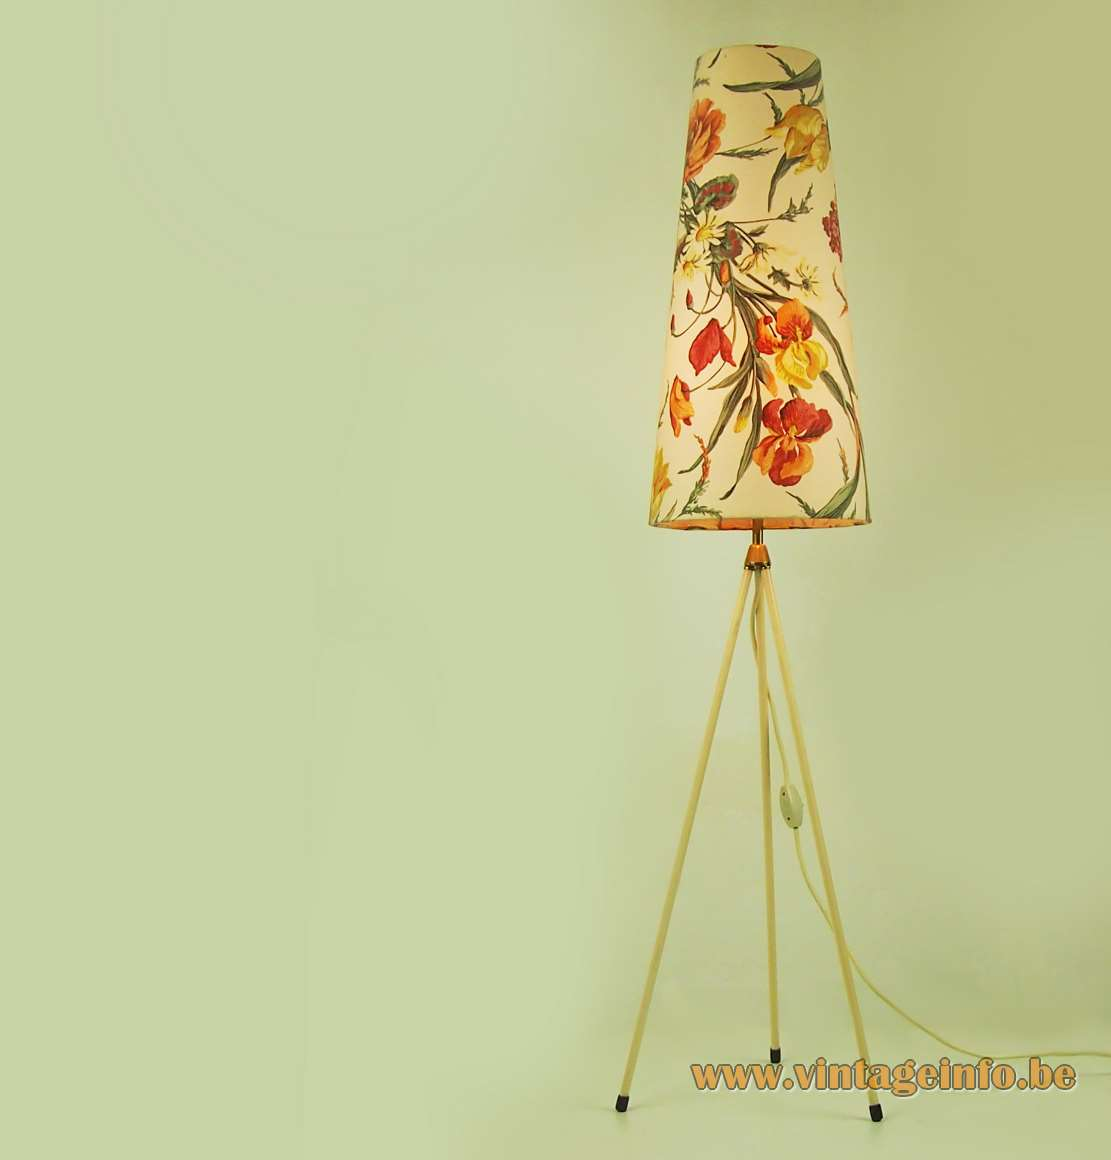 Floral tripod floor lamp big conical fabric lampshade white brass rods Aro Leuchte Germany 1950s 1960s